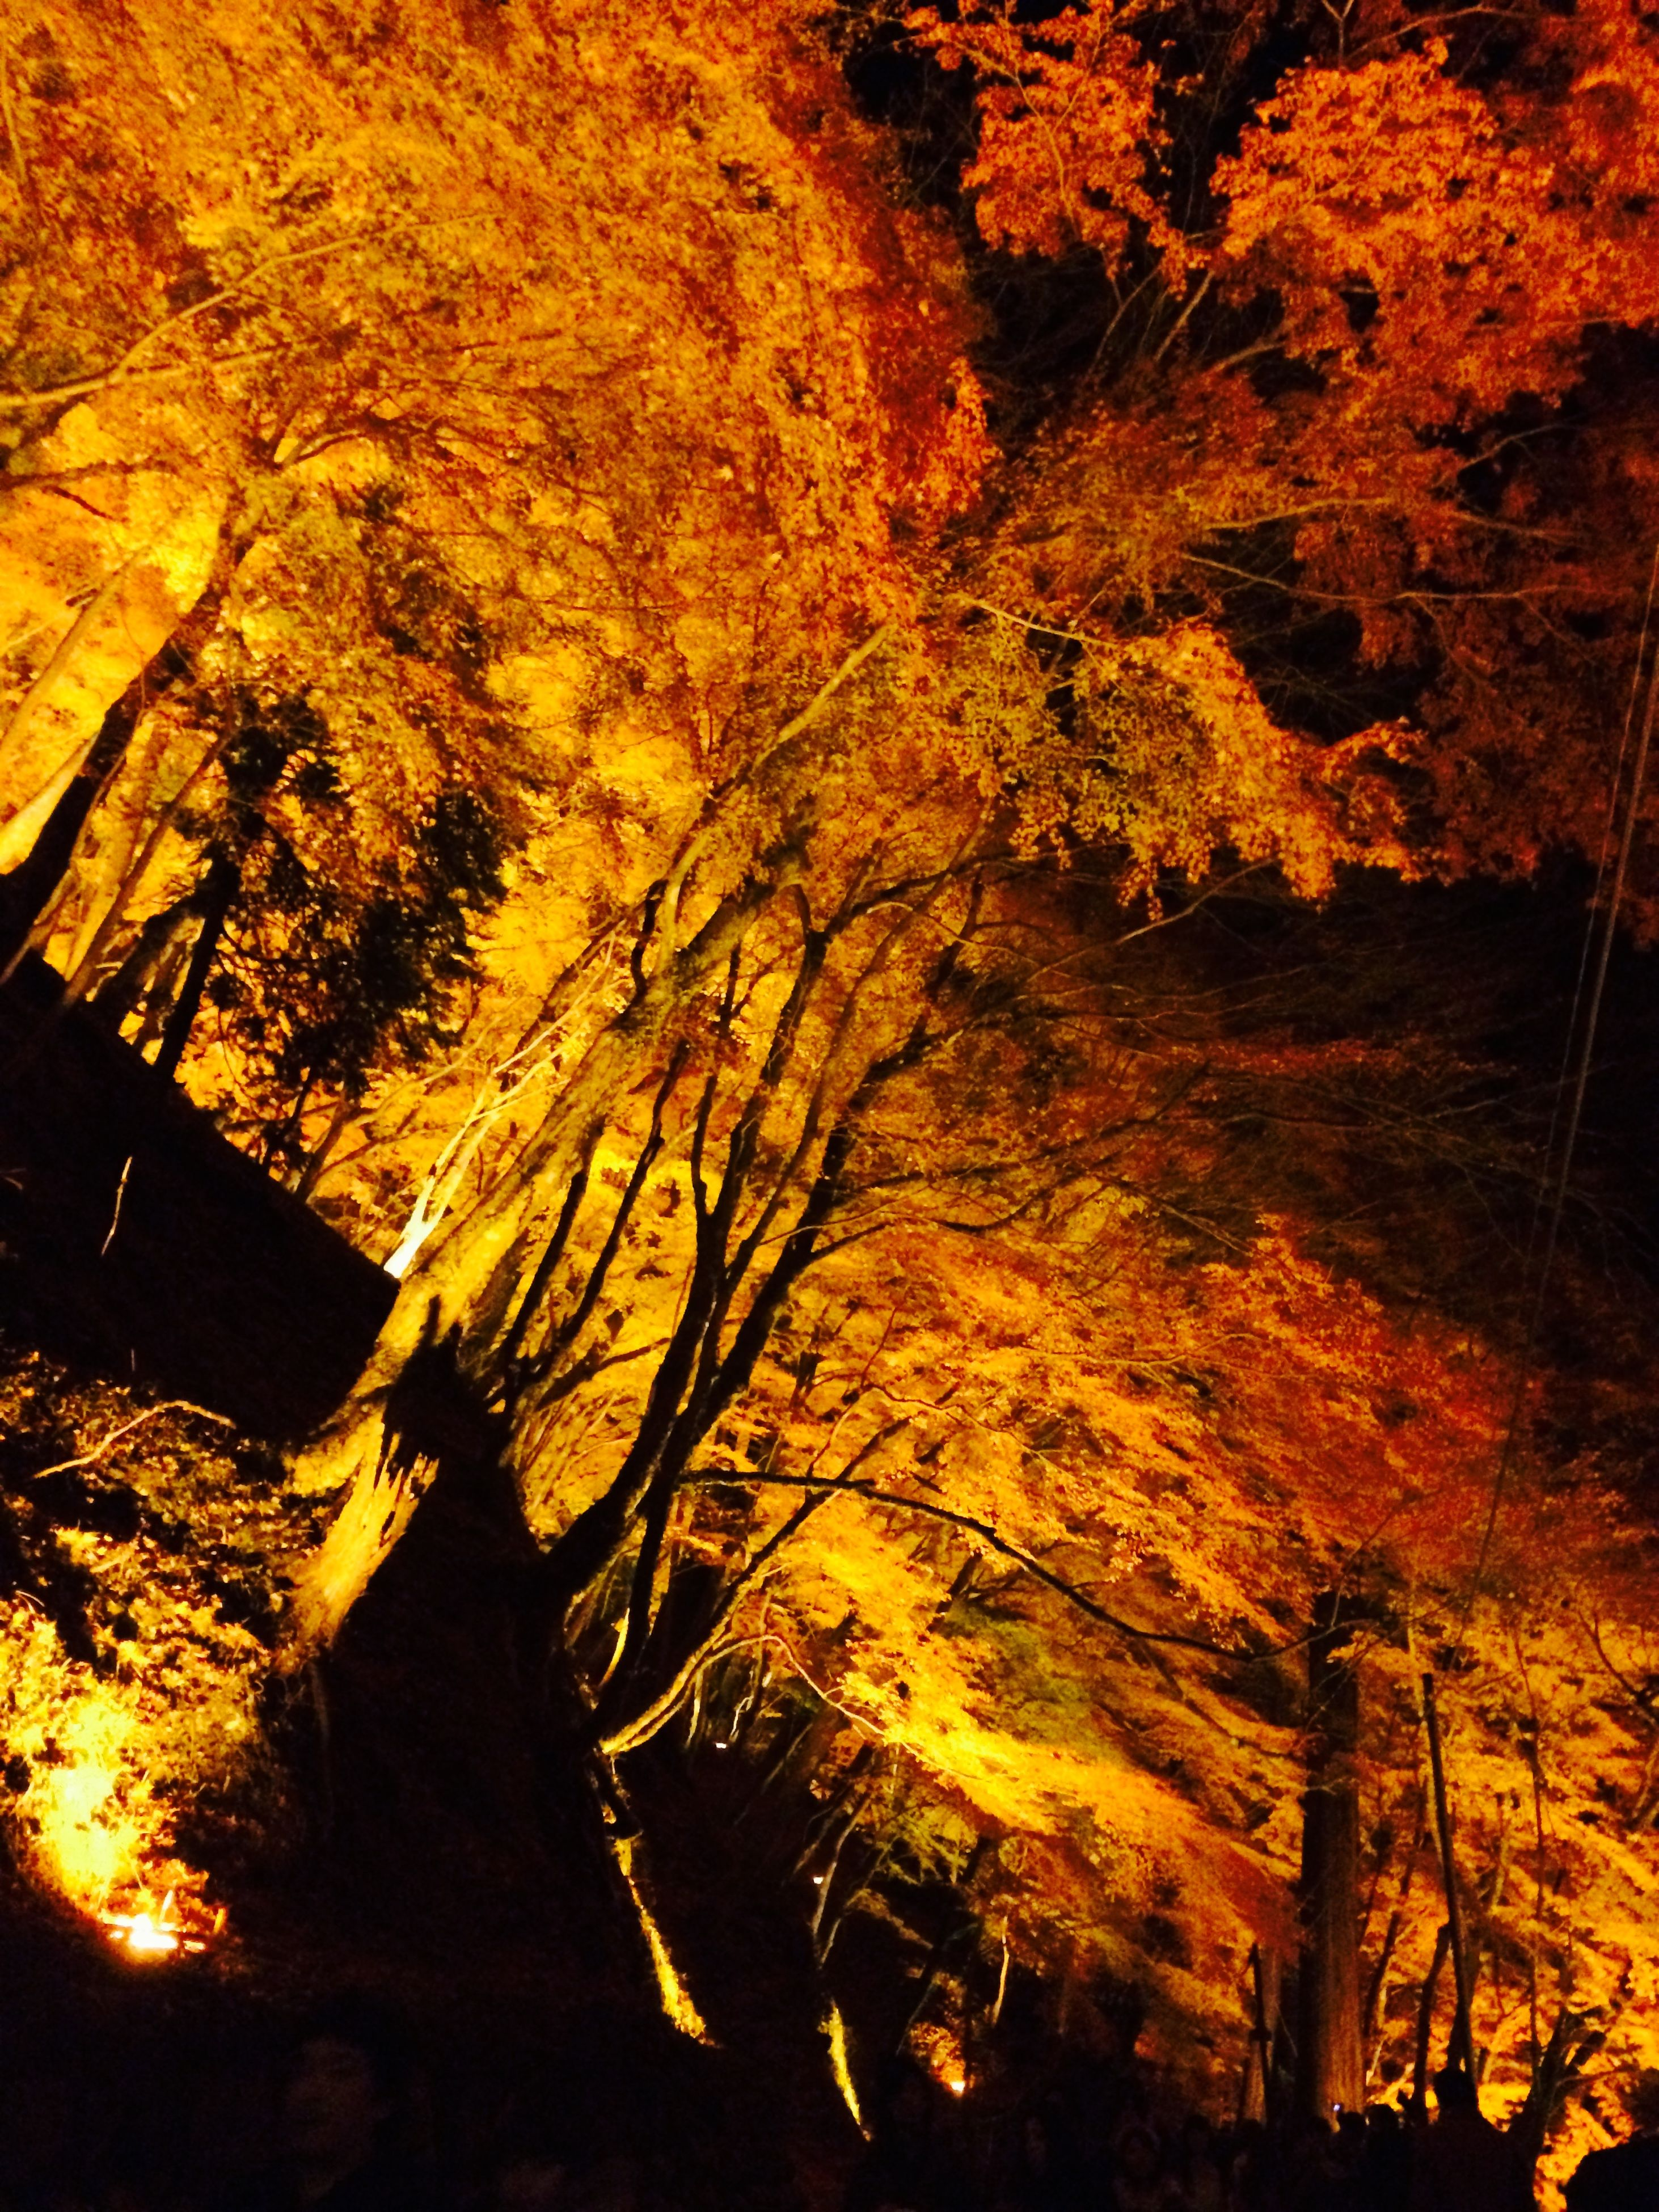 orange color, sunset, tree, yellow, branch, nature, sunlight, low angle view, outdoors, autumn, silhouette, beauty in nature, no people, tranquility, shadow, built structure, growth, change, scenics, tree trunk